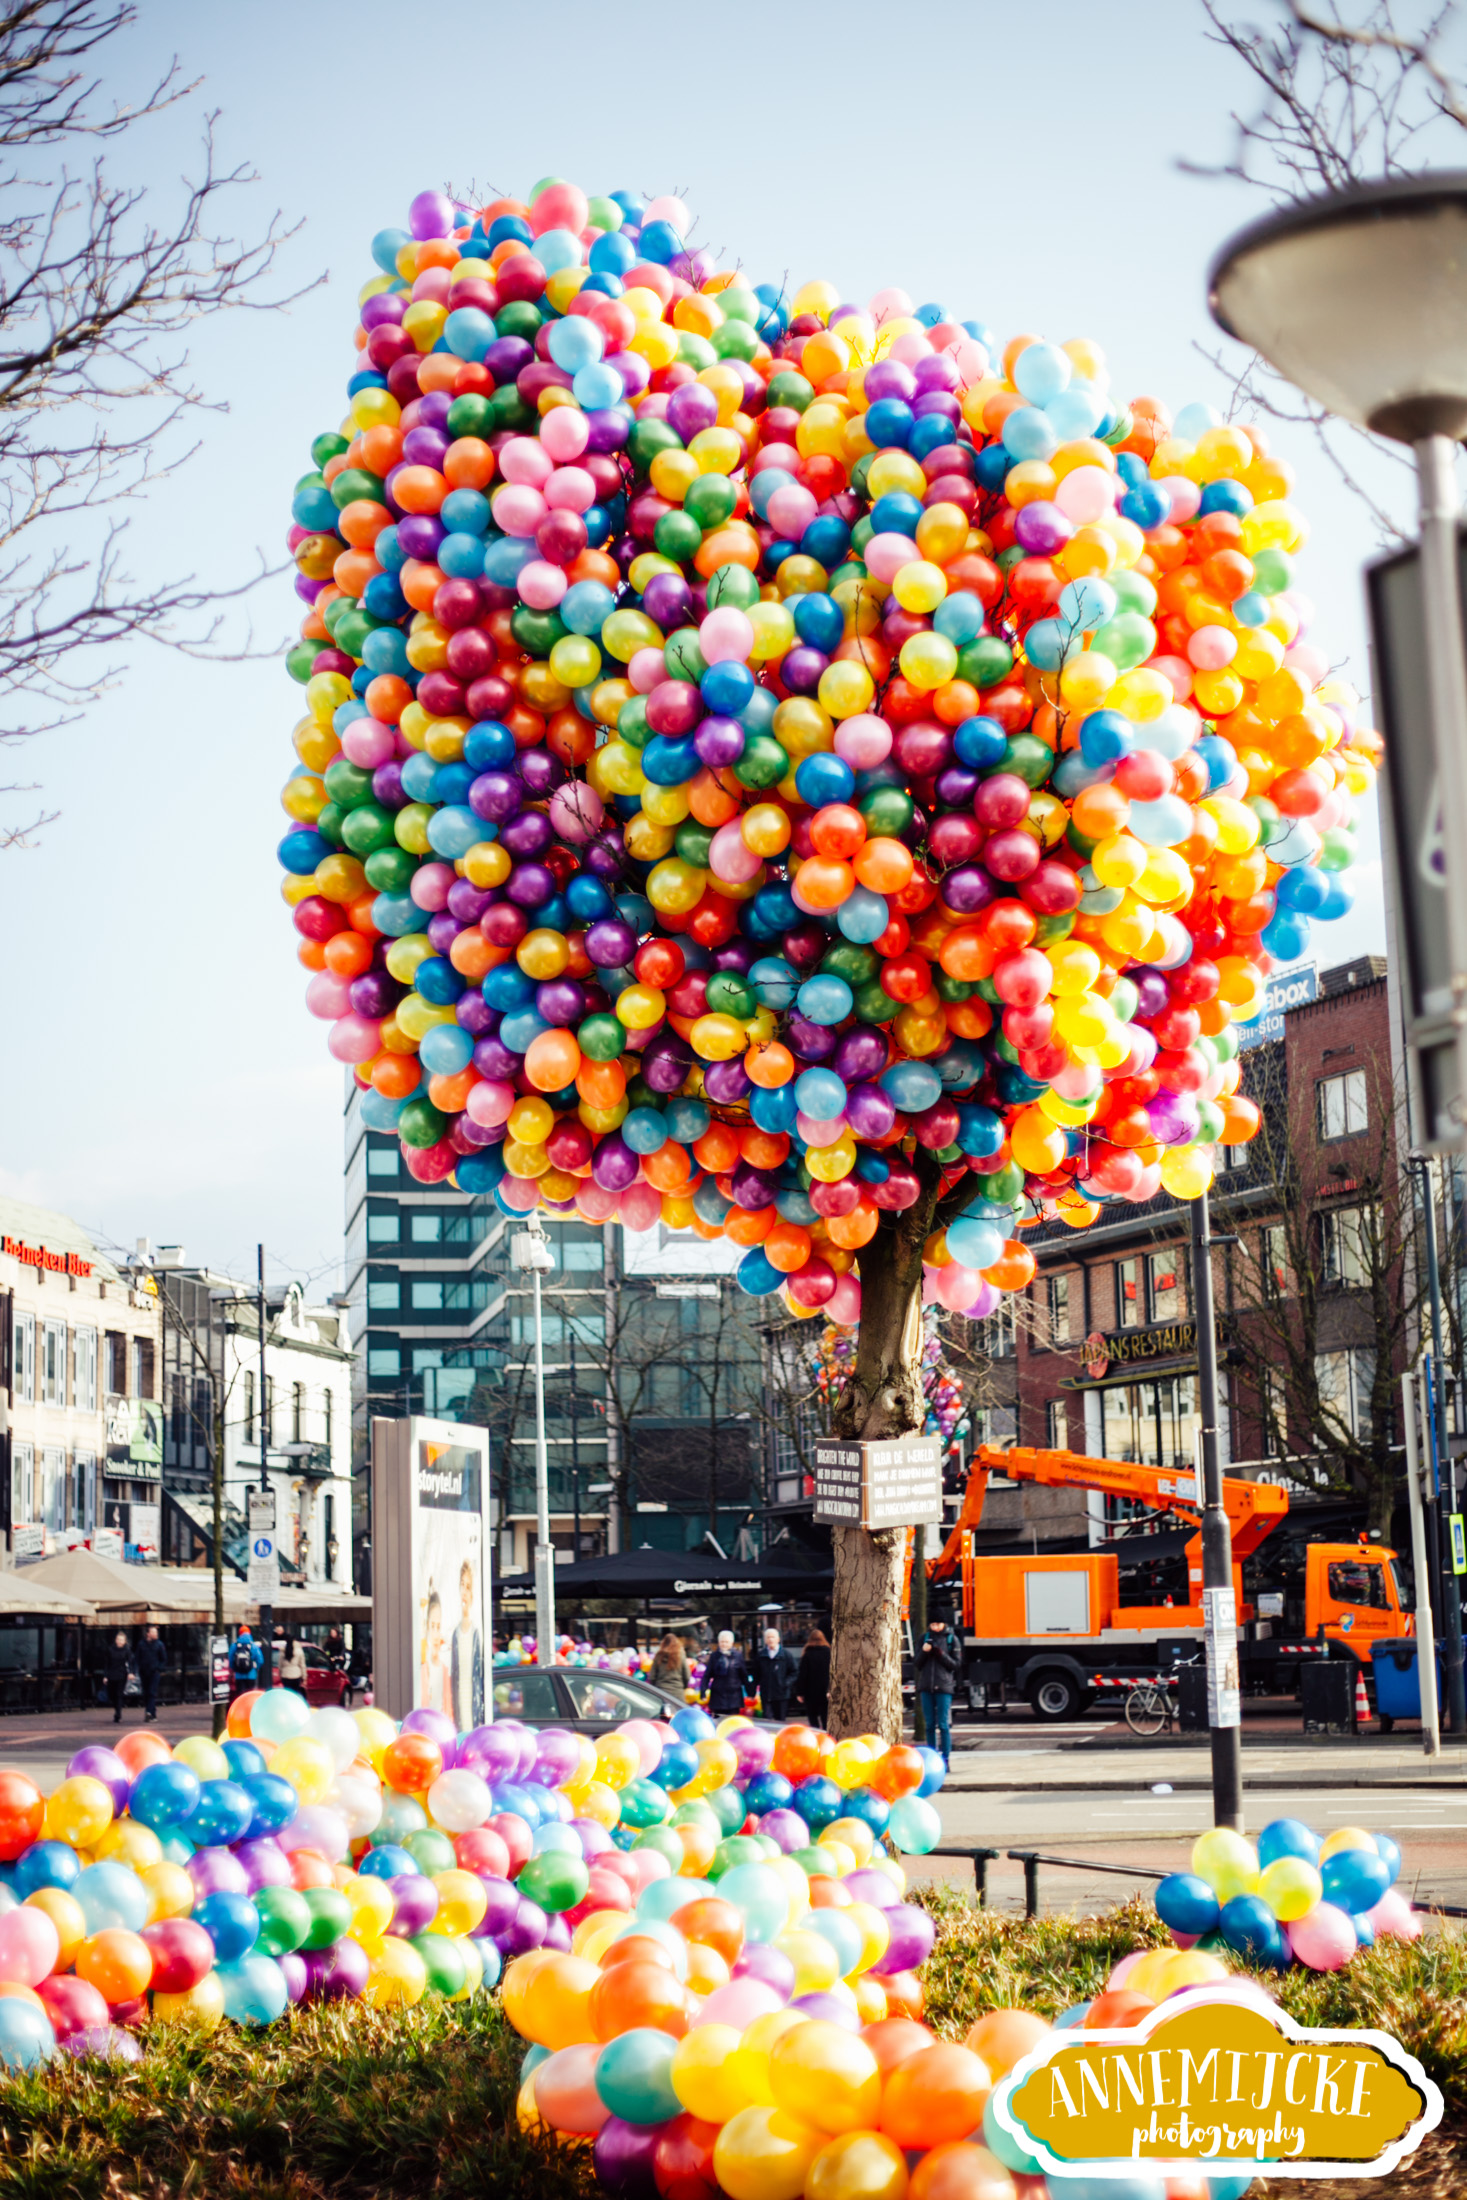 Balloon tree by Mariëlle Coppes from Magical Daydream at Eindhoven Central Station in The Netherlands | I created a balloon tree with the help of an aerial platform, 25 volunteers and 6000 balloons. The tree is a colourful street art installation that makes people smile, and the many balloons remind of the movie 'Up' by Pixar. Click to see many more happy pictures of the street art project.